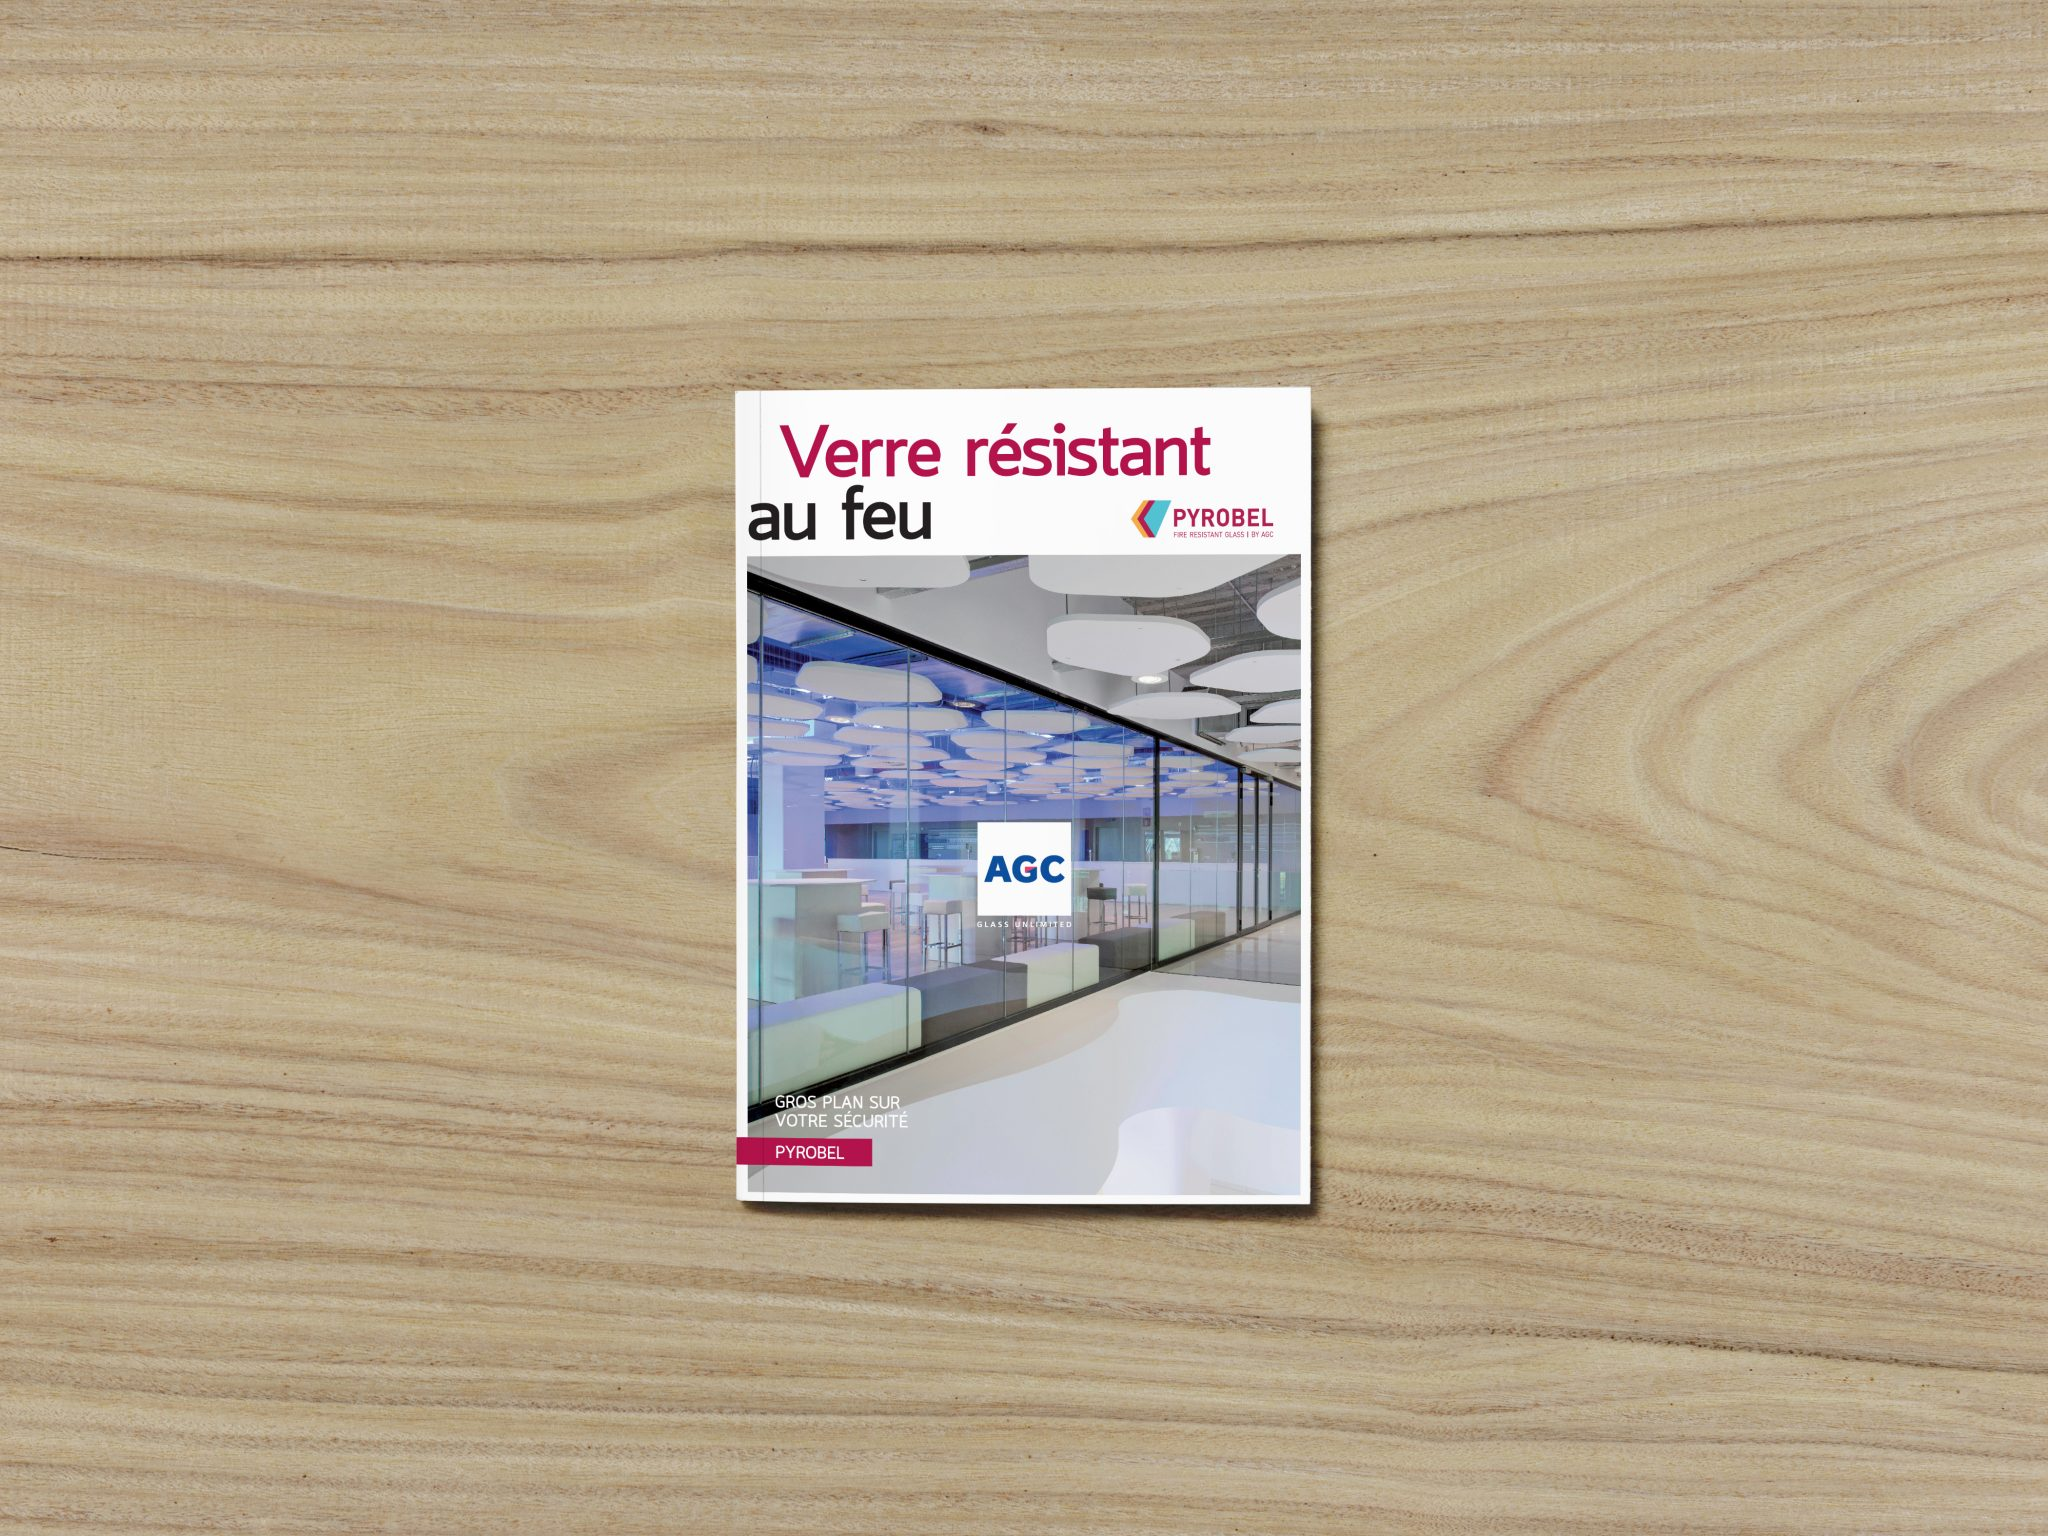 studio witvrouwen layout design graphic branding mise en page brochure leflet AGC your glass cover